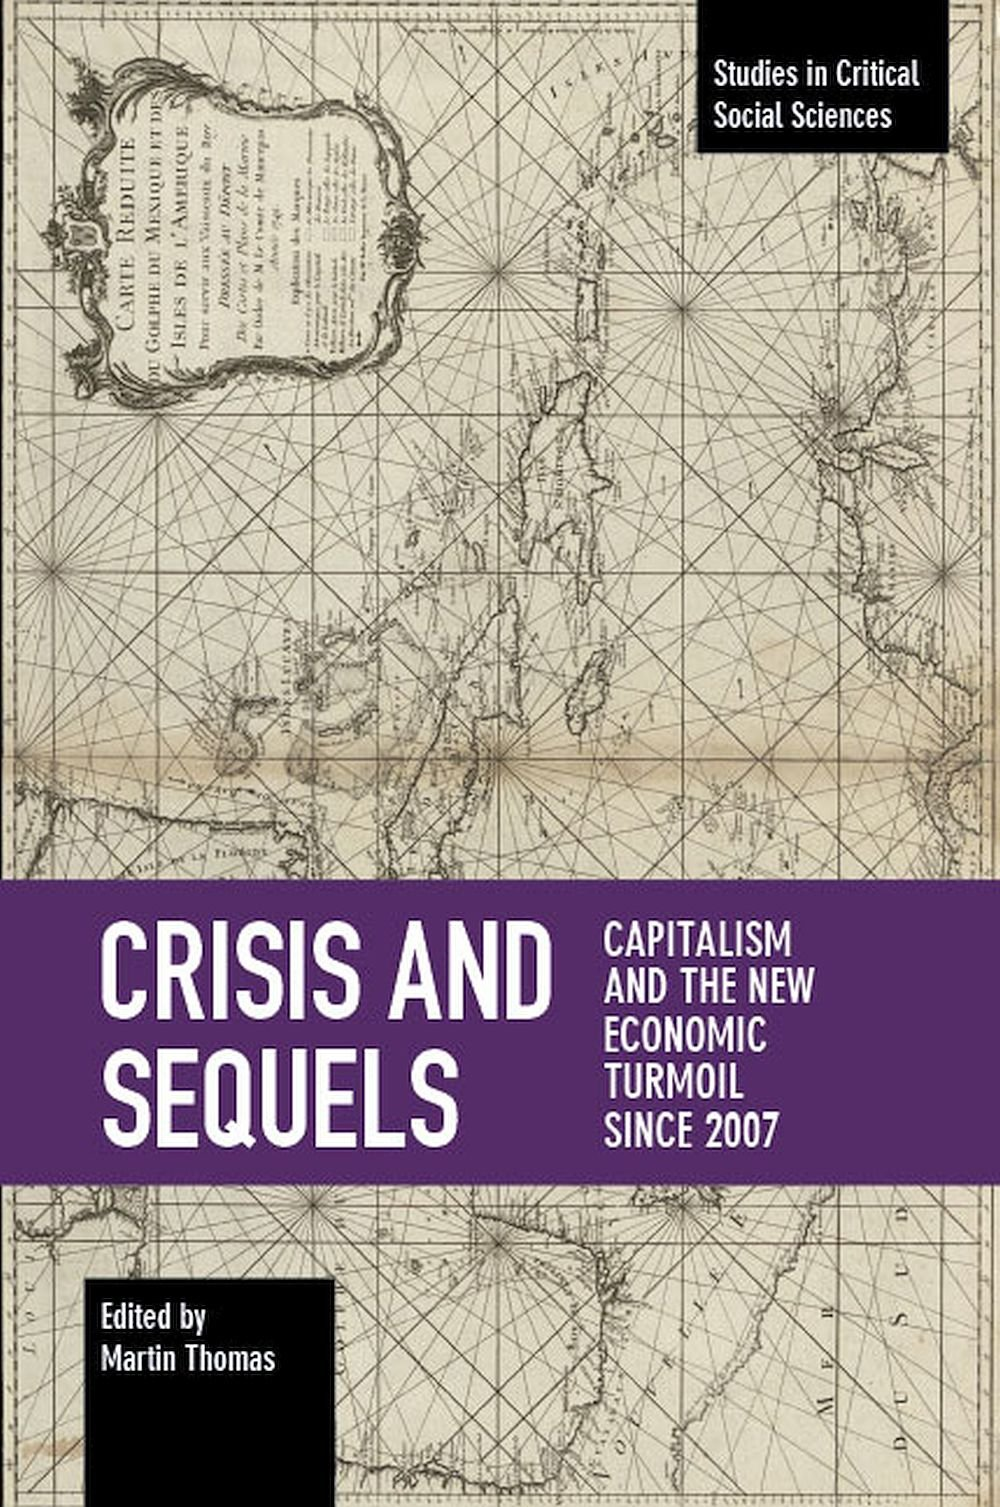 Crisis and Sequels: Capitalism and the New Economic Turmoil Since 2007 (Studies in Critical Social Sciences) by Haymarket Books